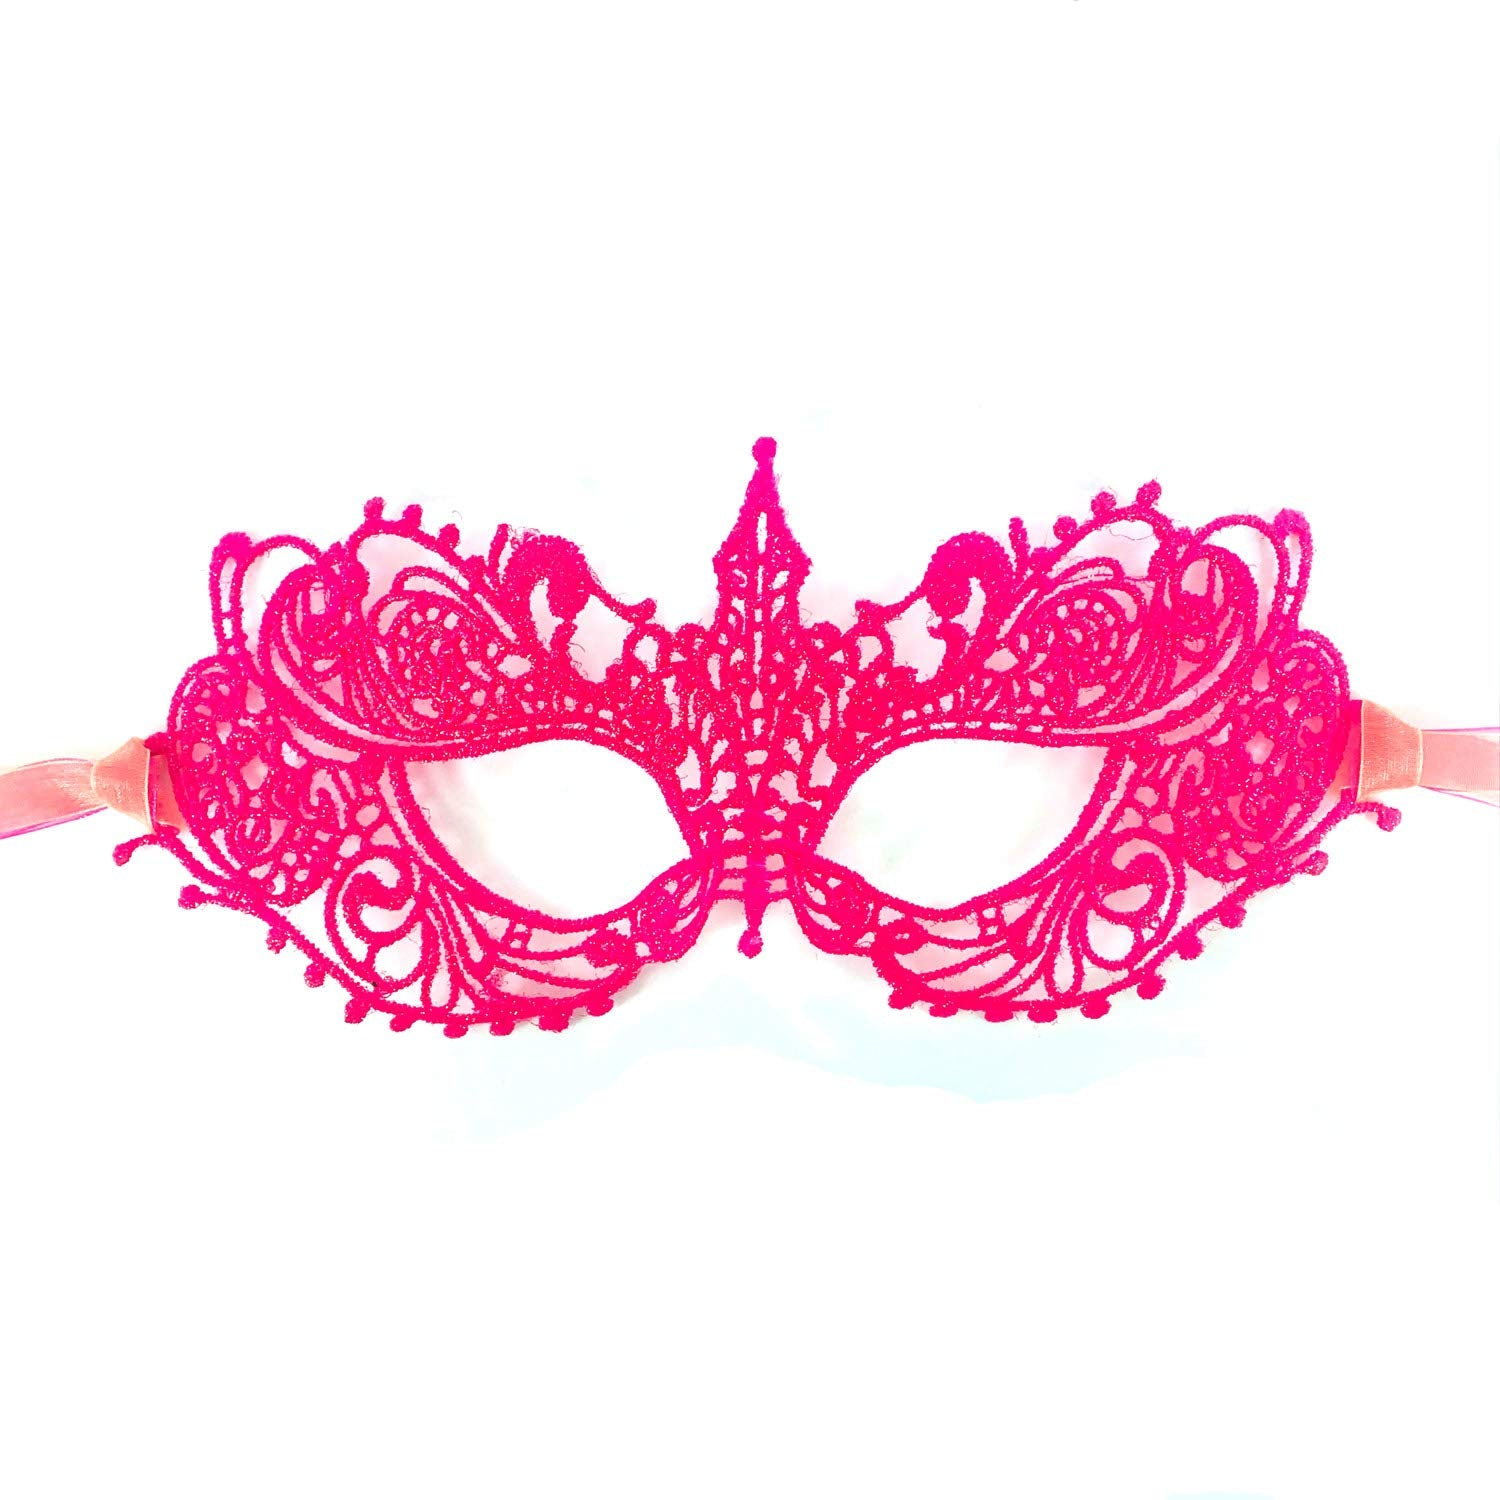 Samantha Peach Masquerade Mask - The Authentic 50 Shades Darker Ana Lace Anastasia Goddess Mask (Barbie Pink)